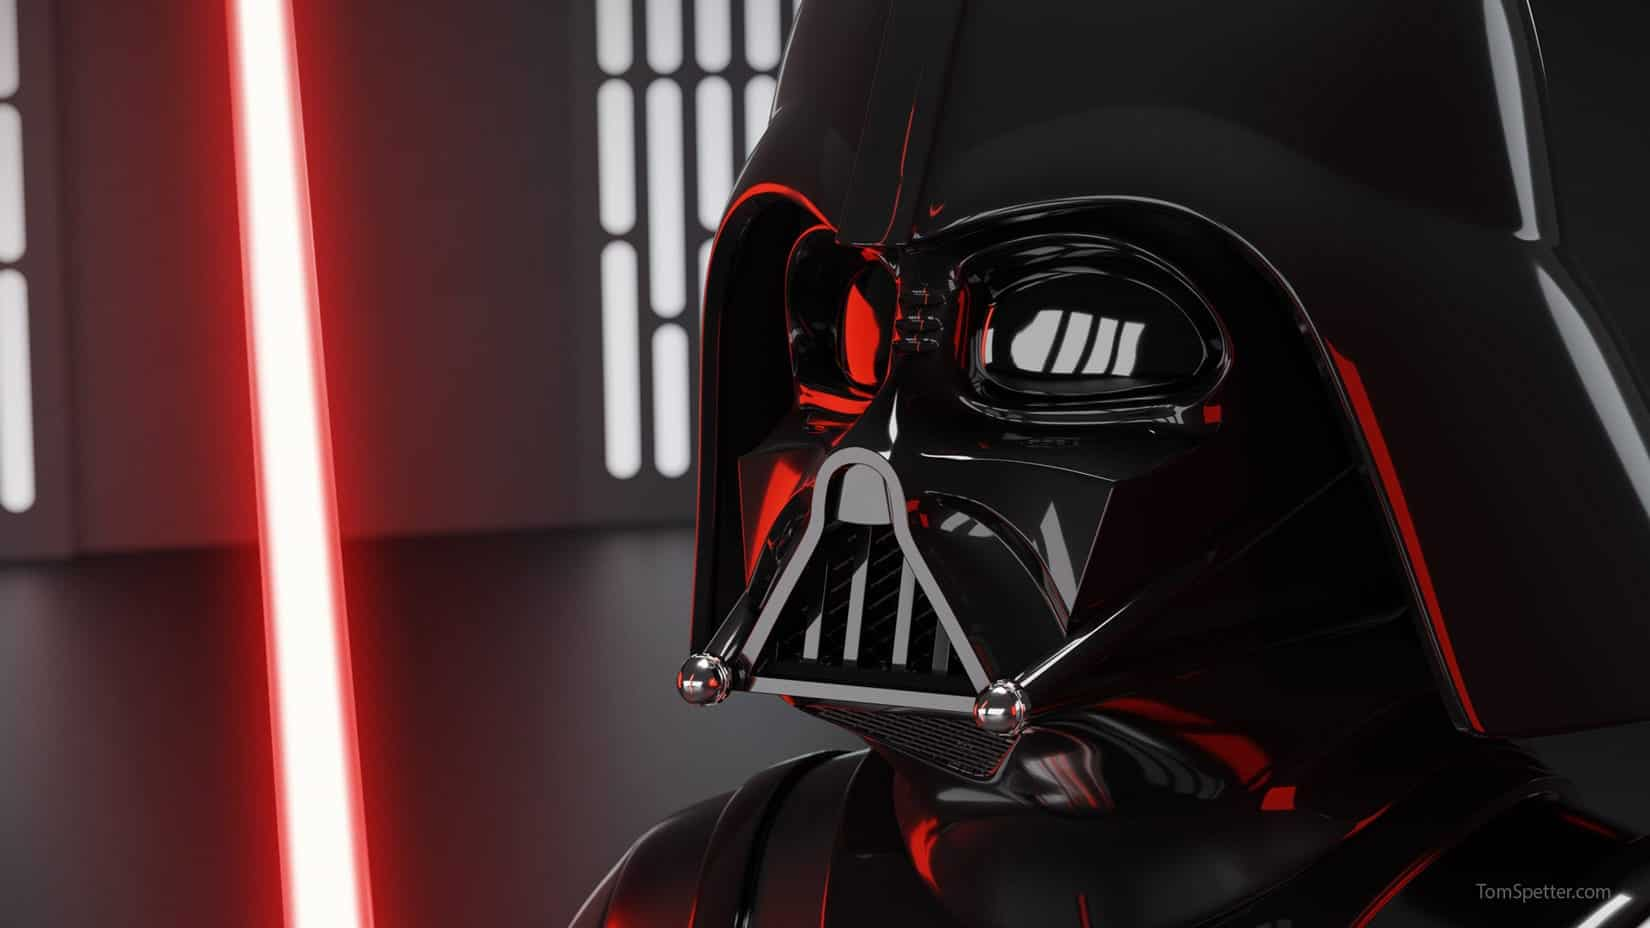 A Blender 3D render of The dark lord of the sith, Darth Vader.